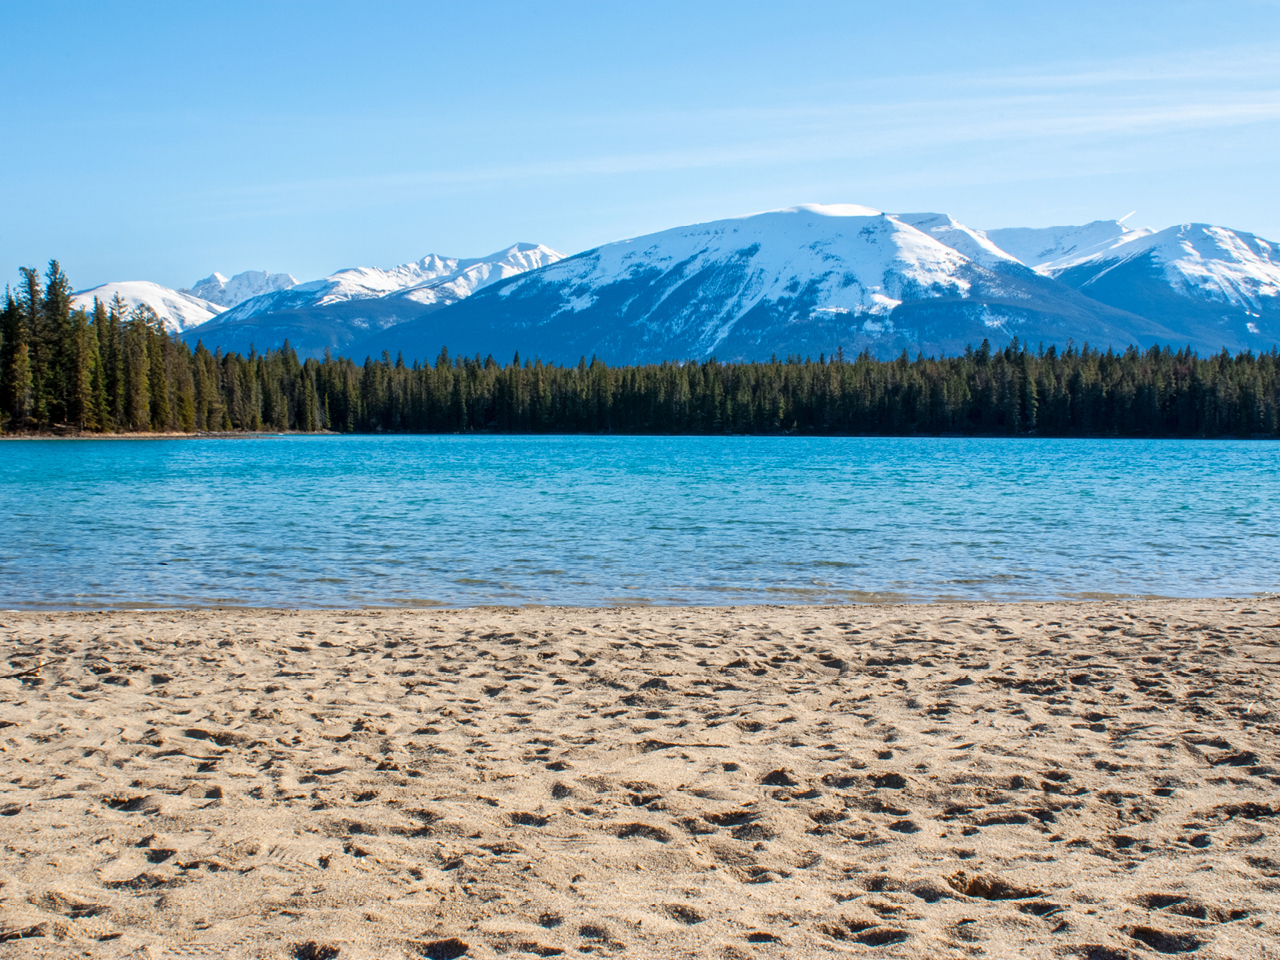 Beach and lakeside, in the distance: forestry and snowy mountain tops